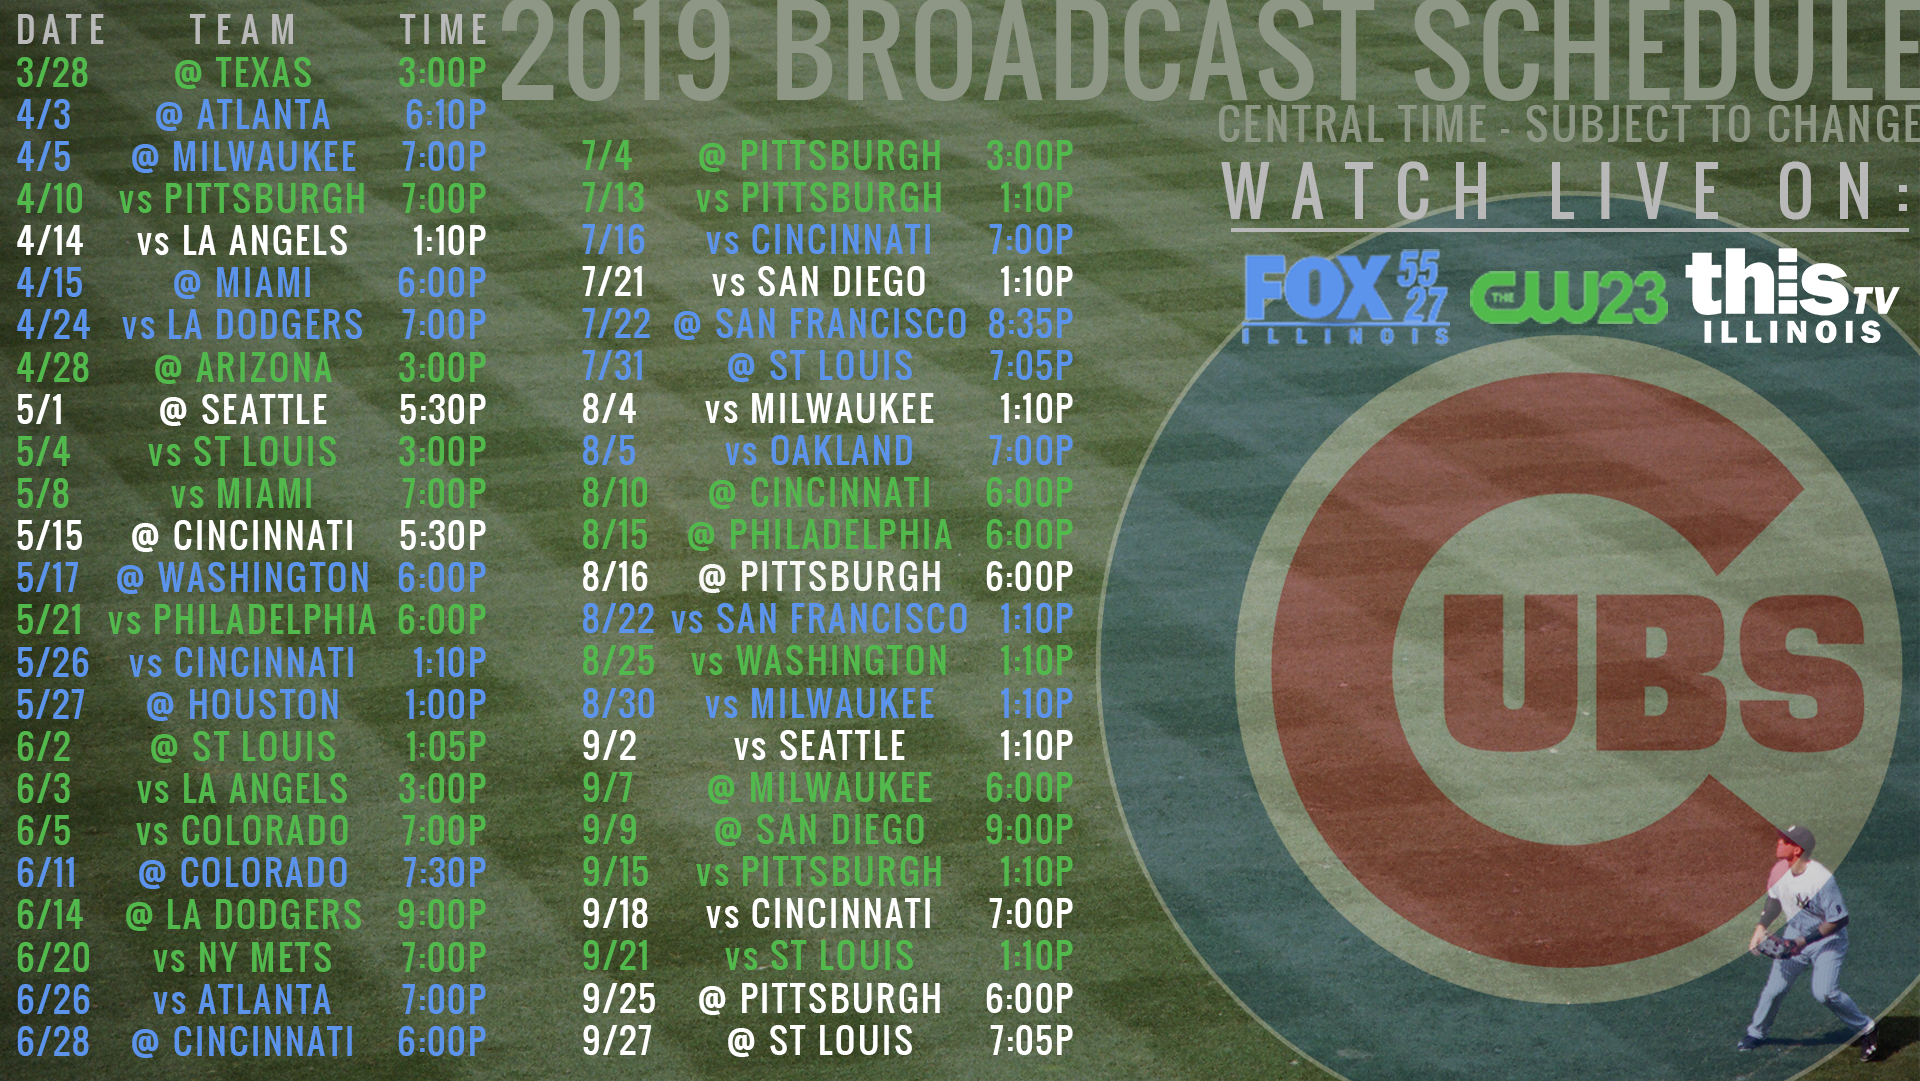 Watch live game broadcasts on FOX Illinois, CW23 and ThisTV in your local area.